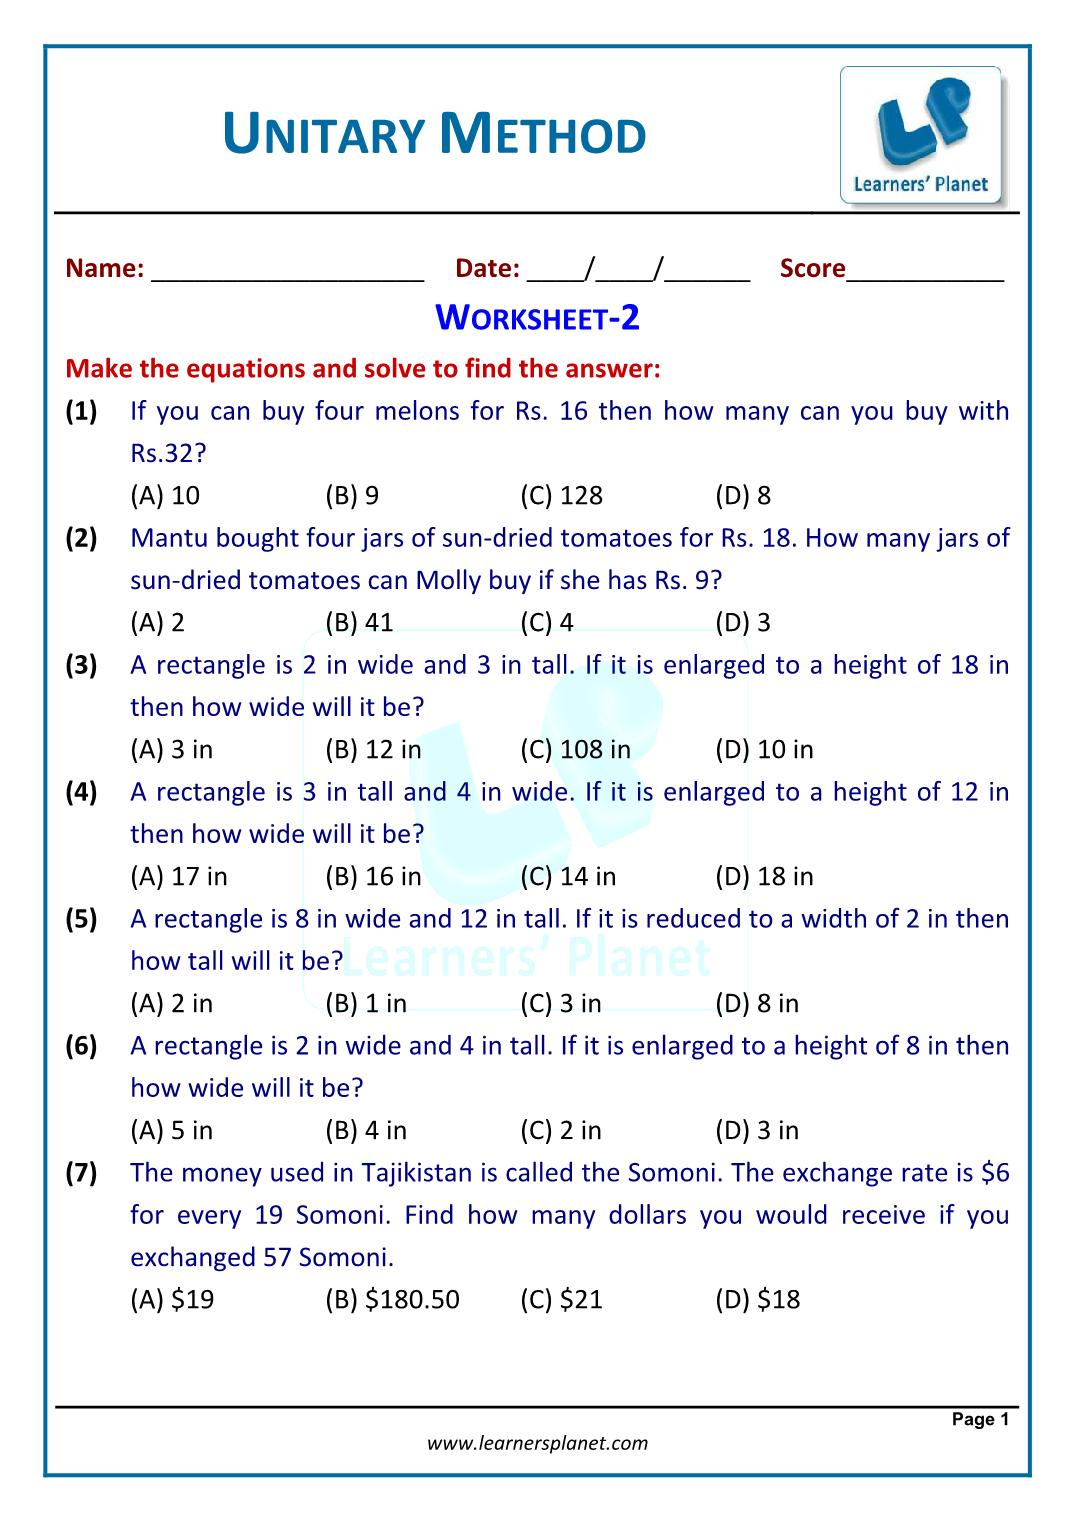 Worksheet Unitary Method